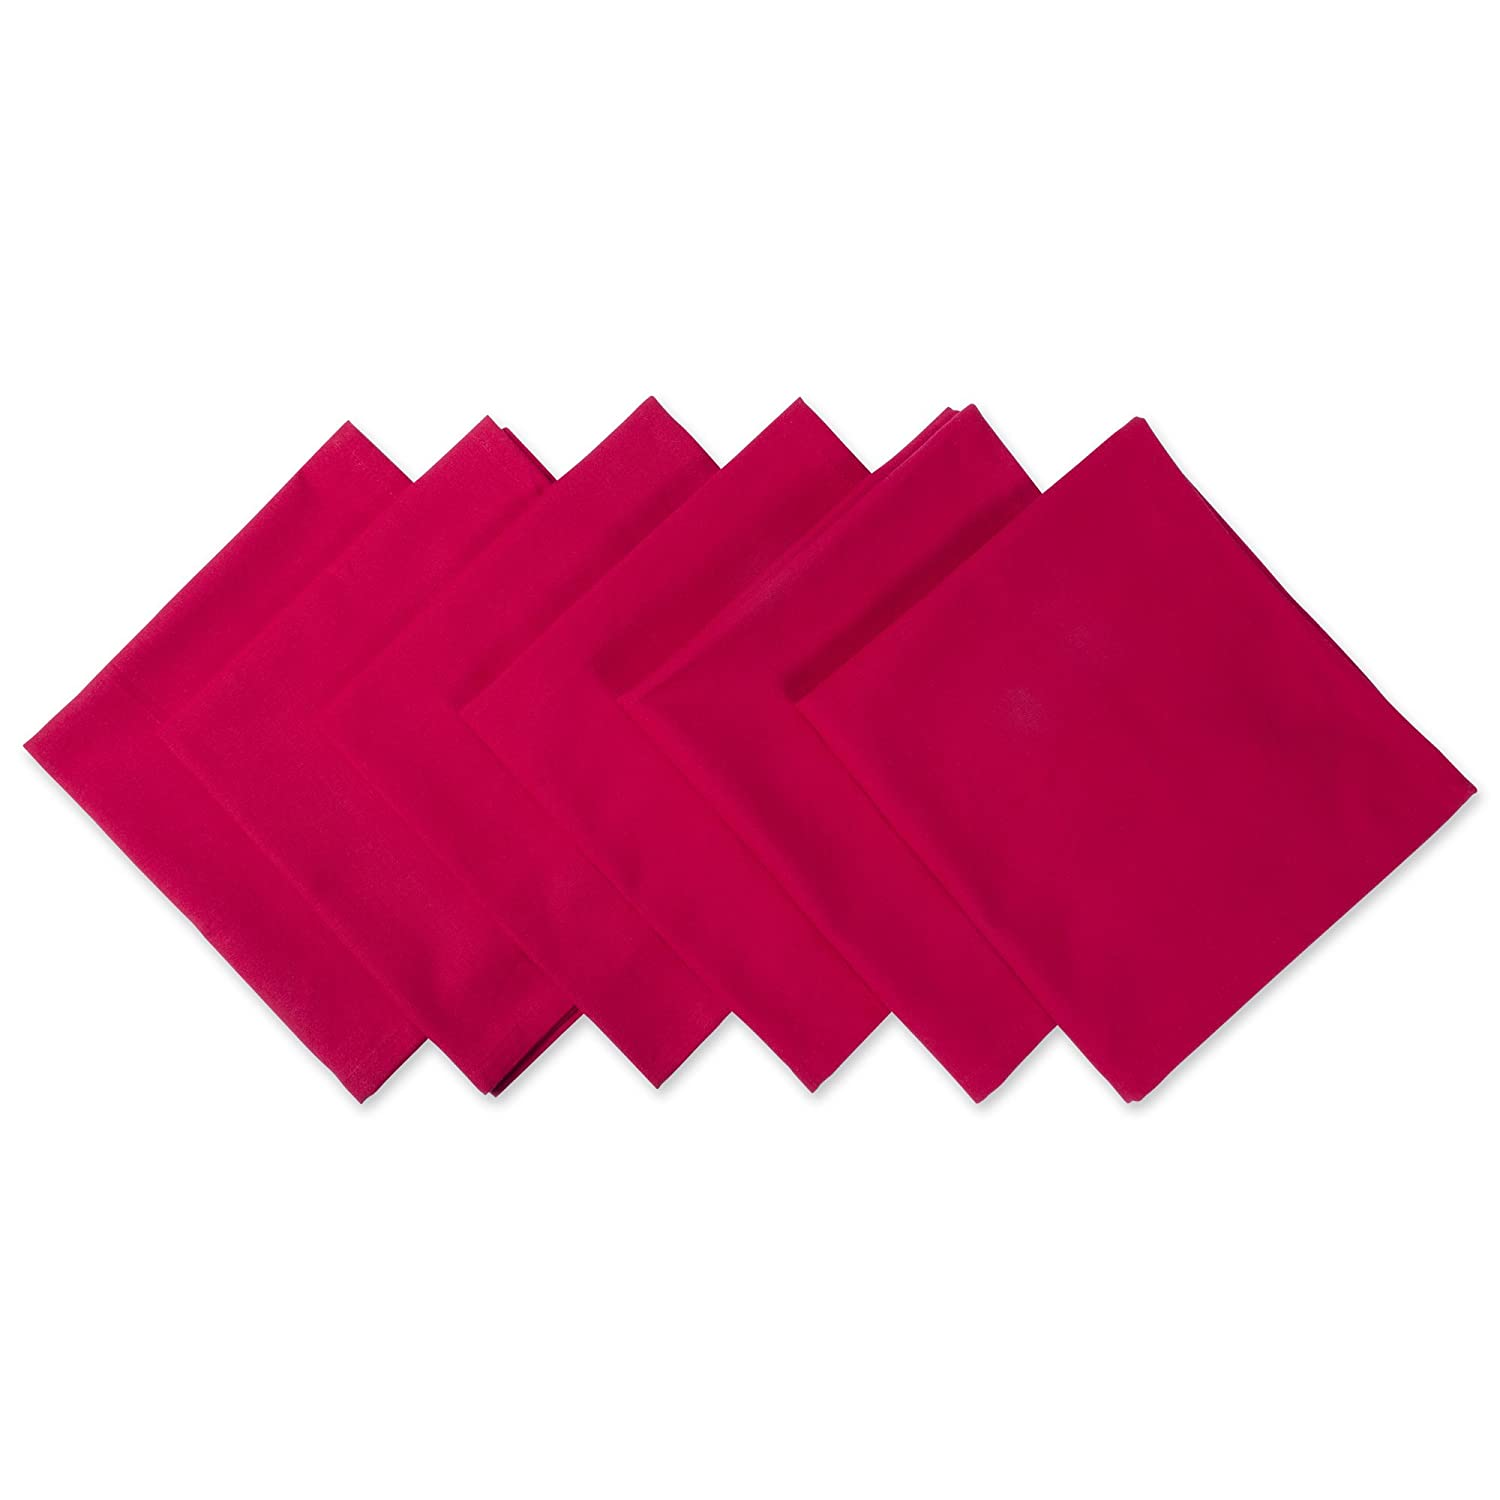 Oversized Tango Red Cotton Dinner Napkins Set of 6 | ChristmasTablescapeDecor.com